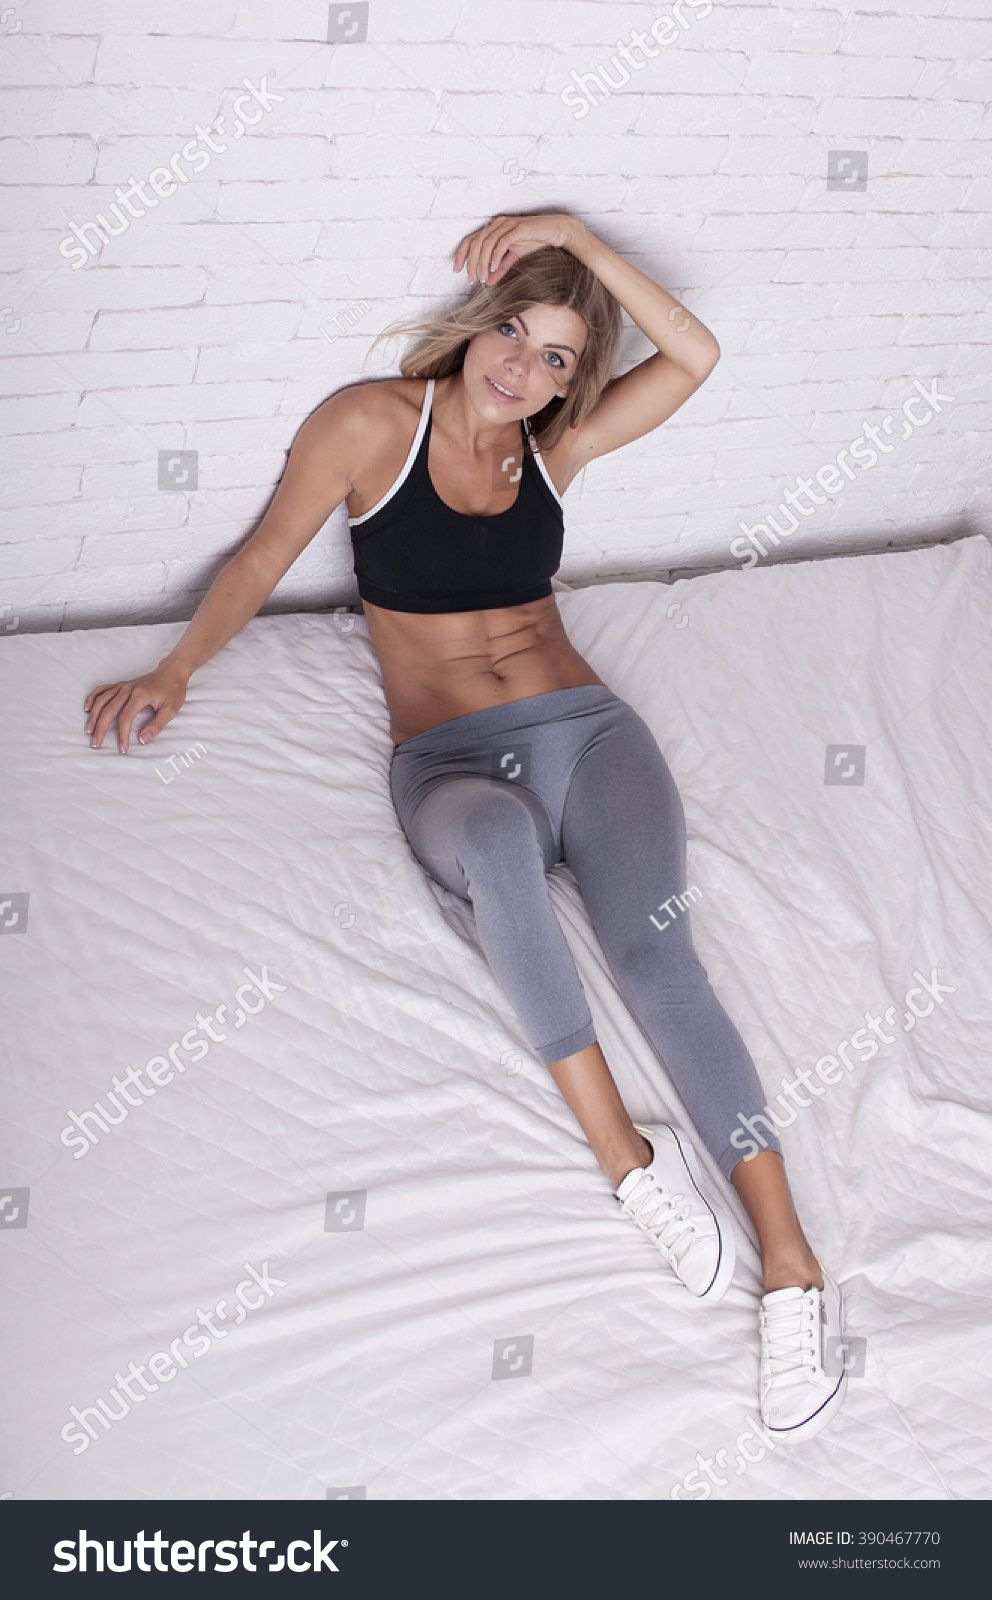 attractive fitness woman, trained female body #Ad , #affiliate, #woman#fitness#attractive#body